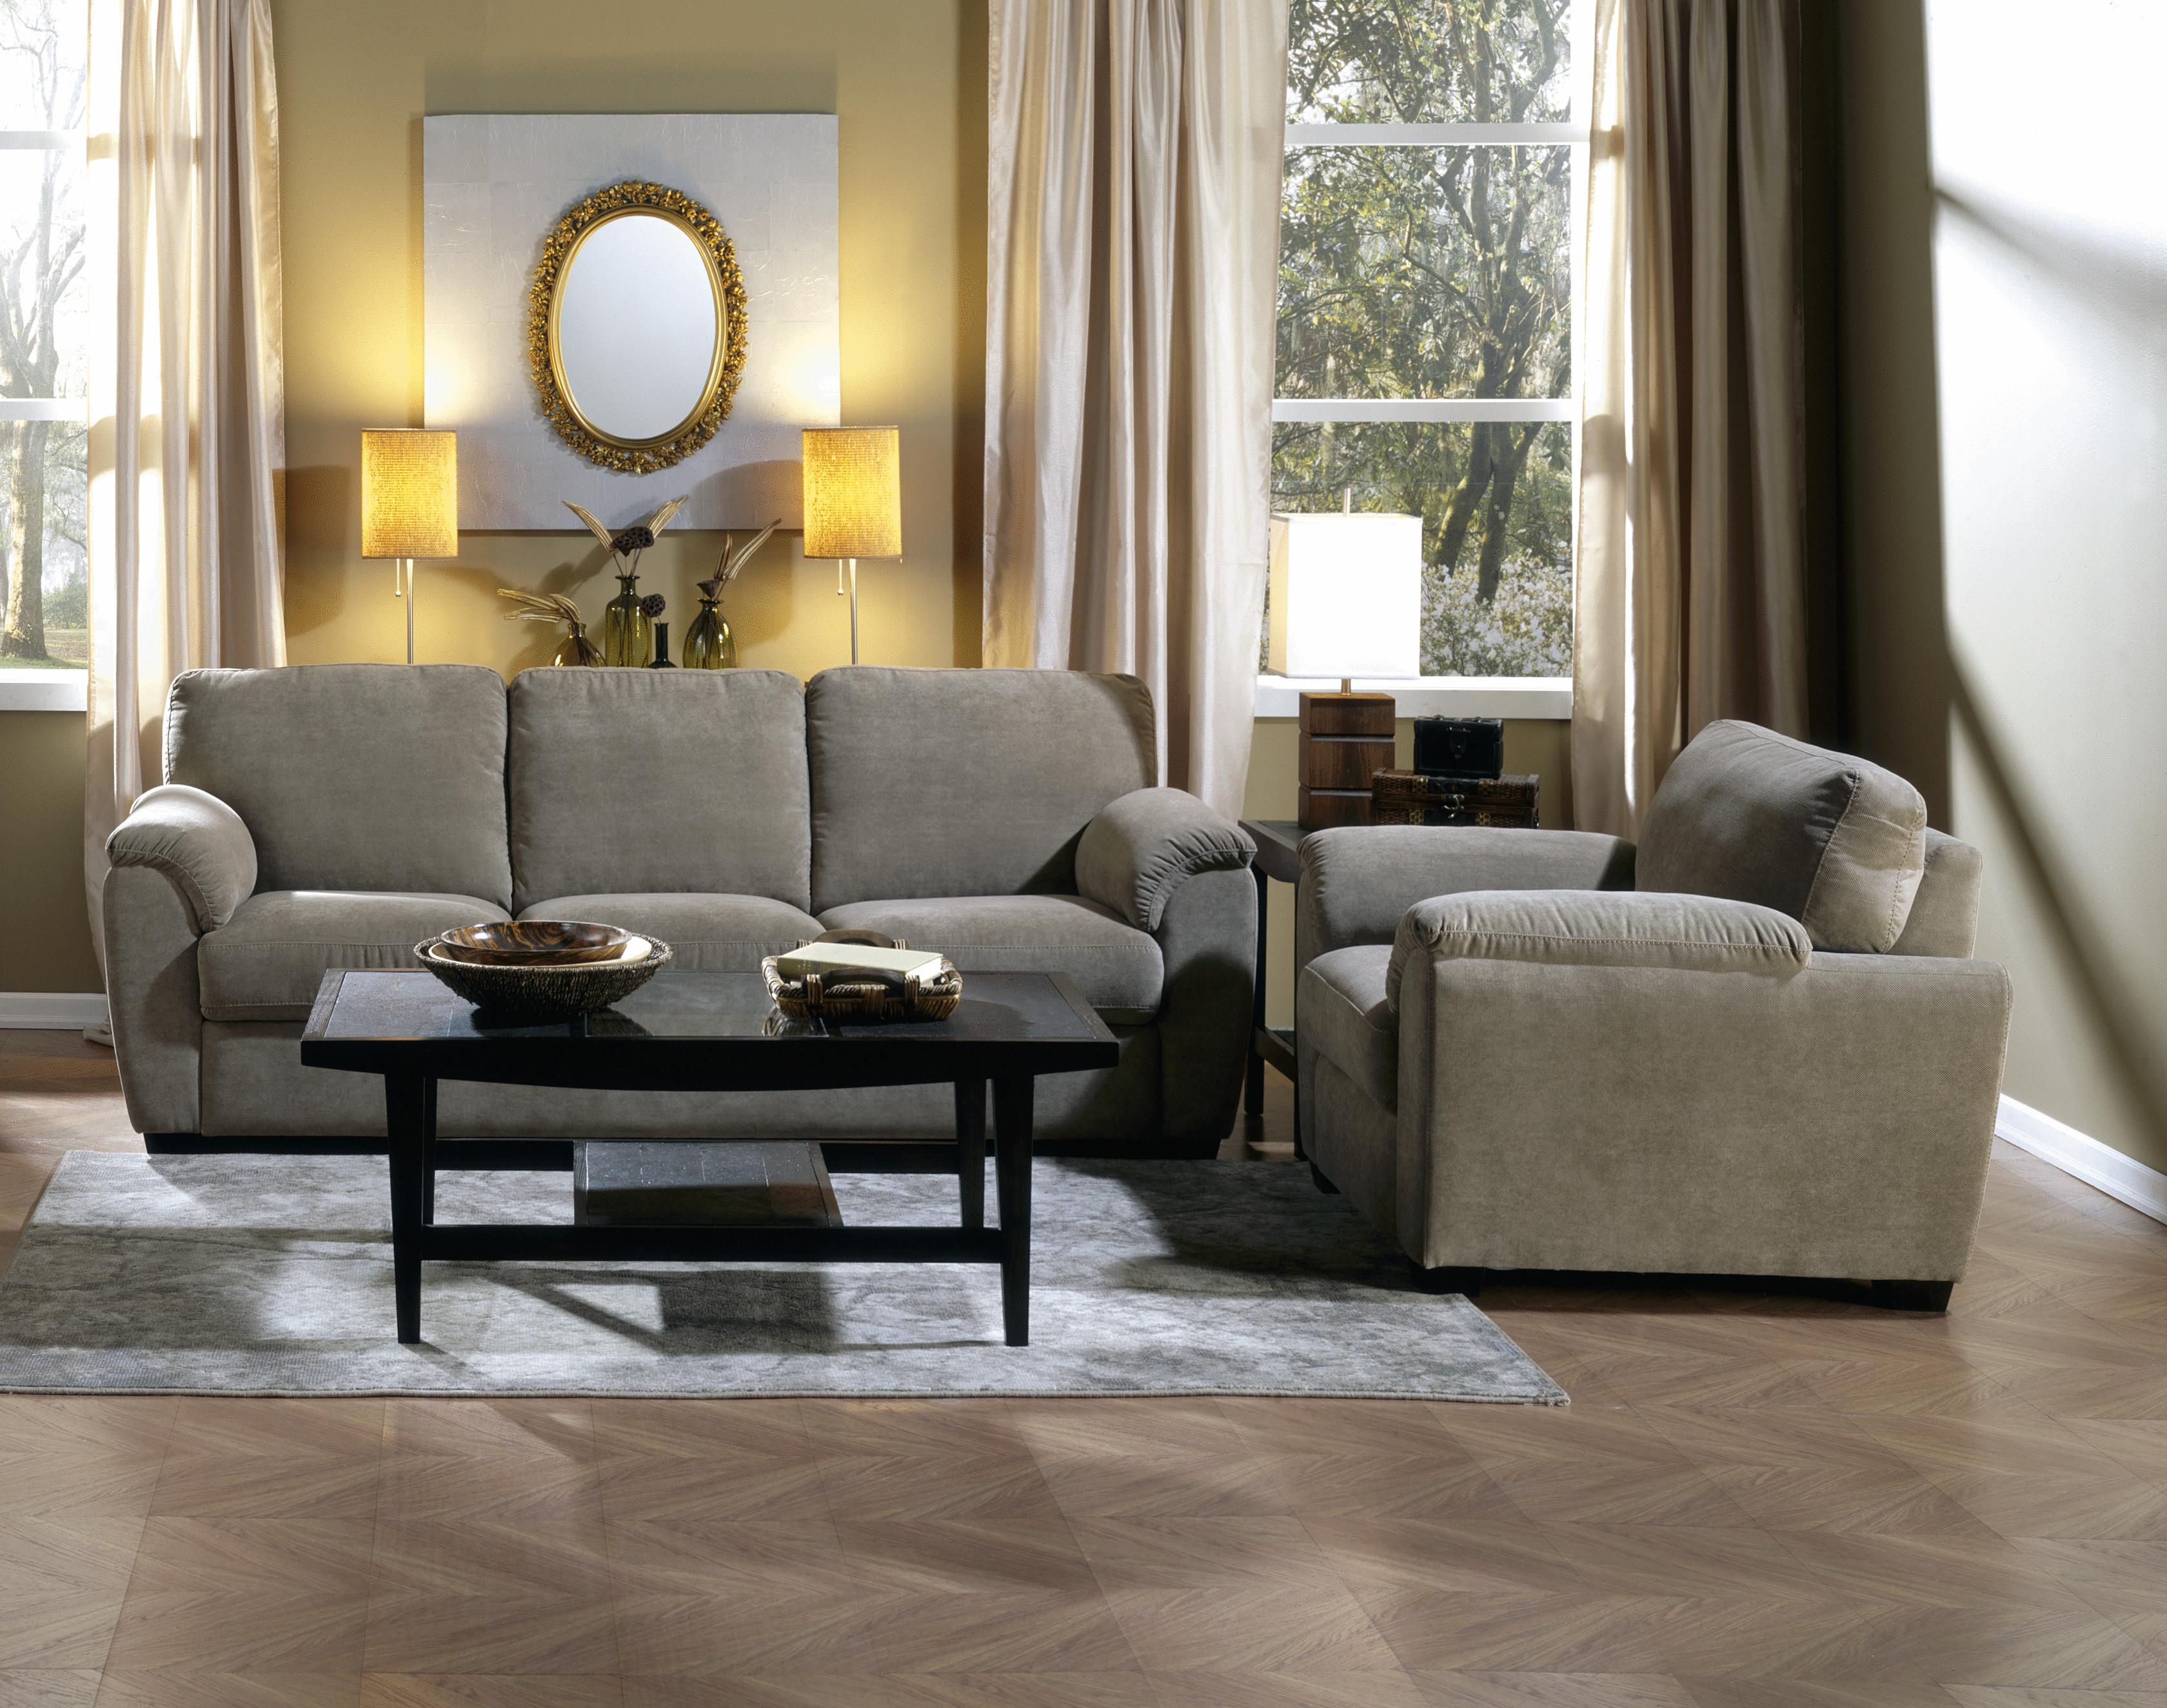 palliser stationary sofas purchase sofa set online in india lanza casual with sloped pillow arms a1